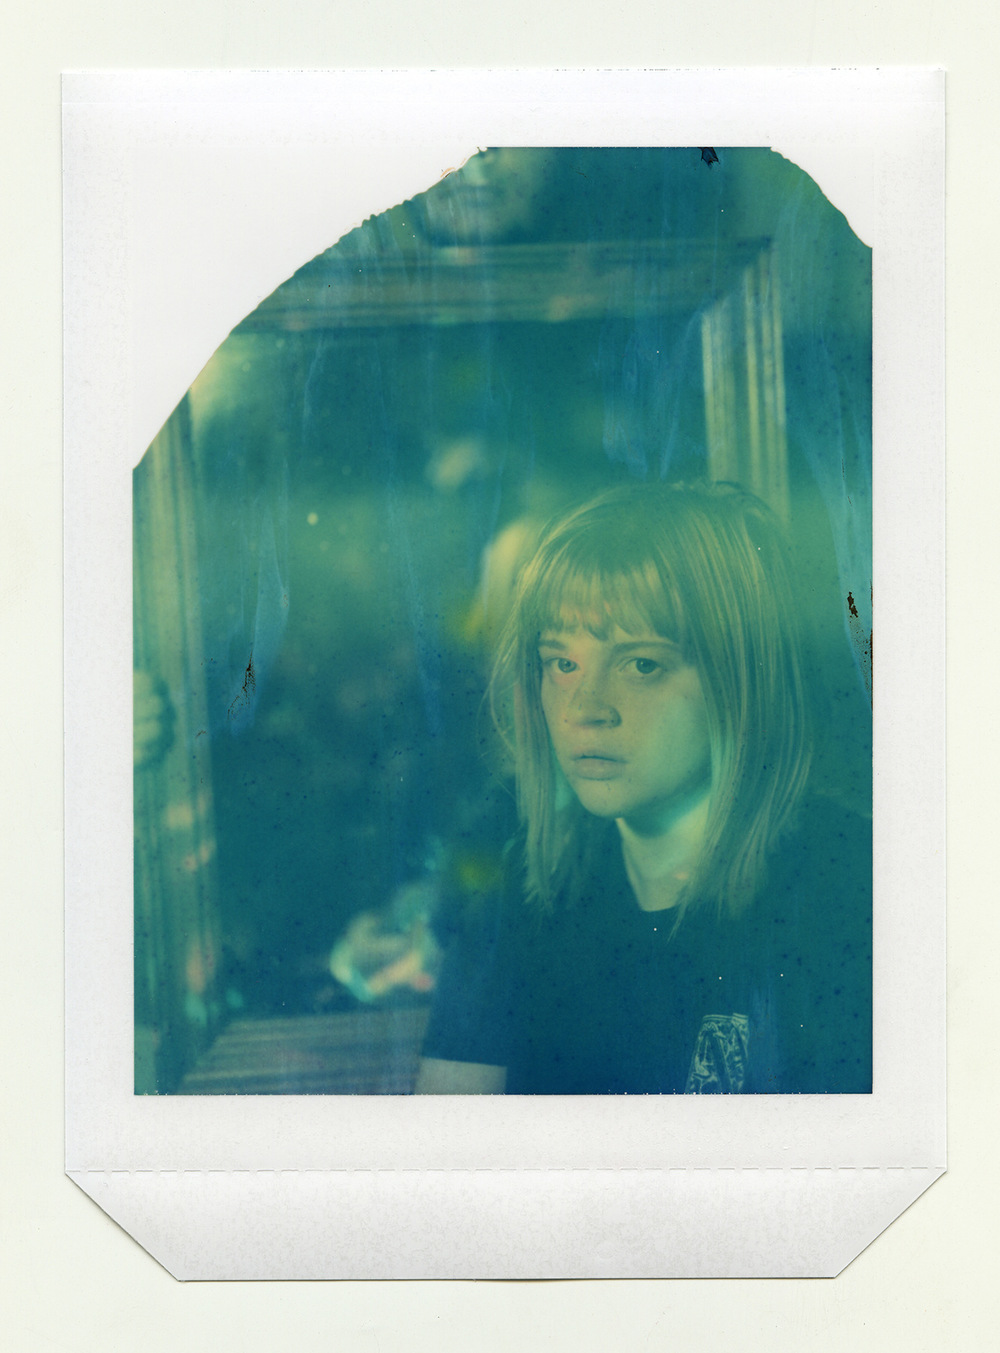 Brian Garbrecht - Reflecting Family Expired Polaroid type 58 4x5 instant film. 2018